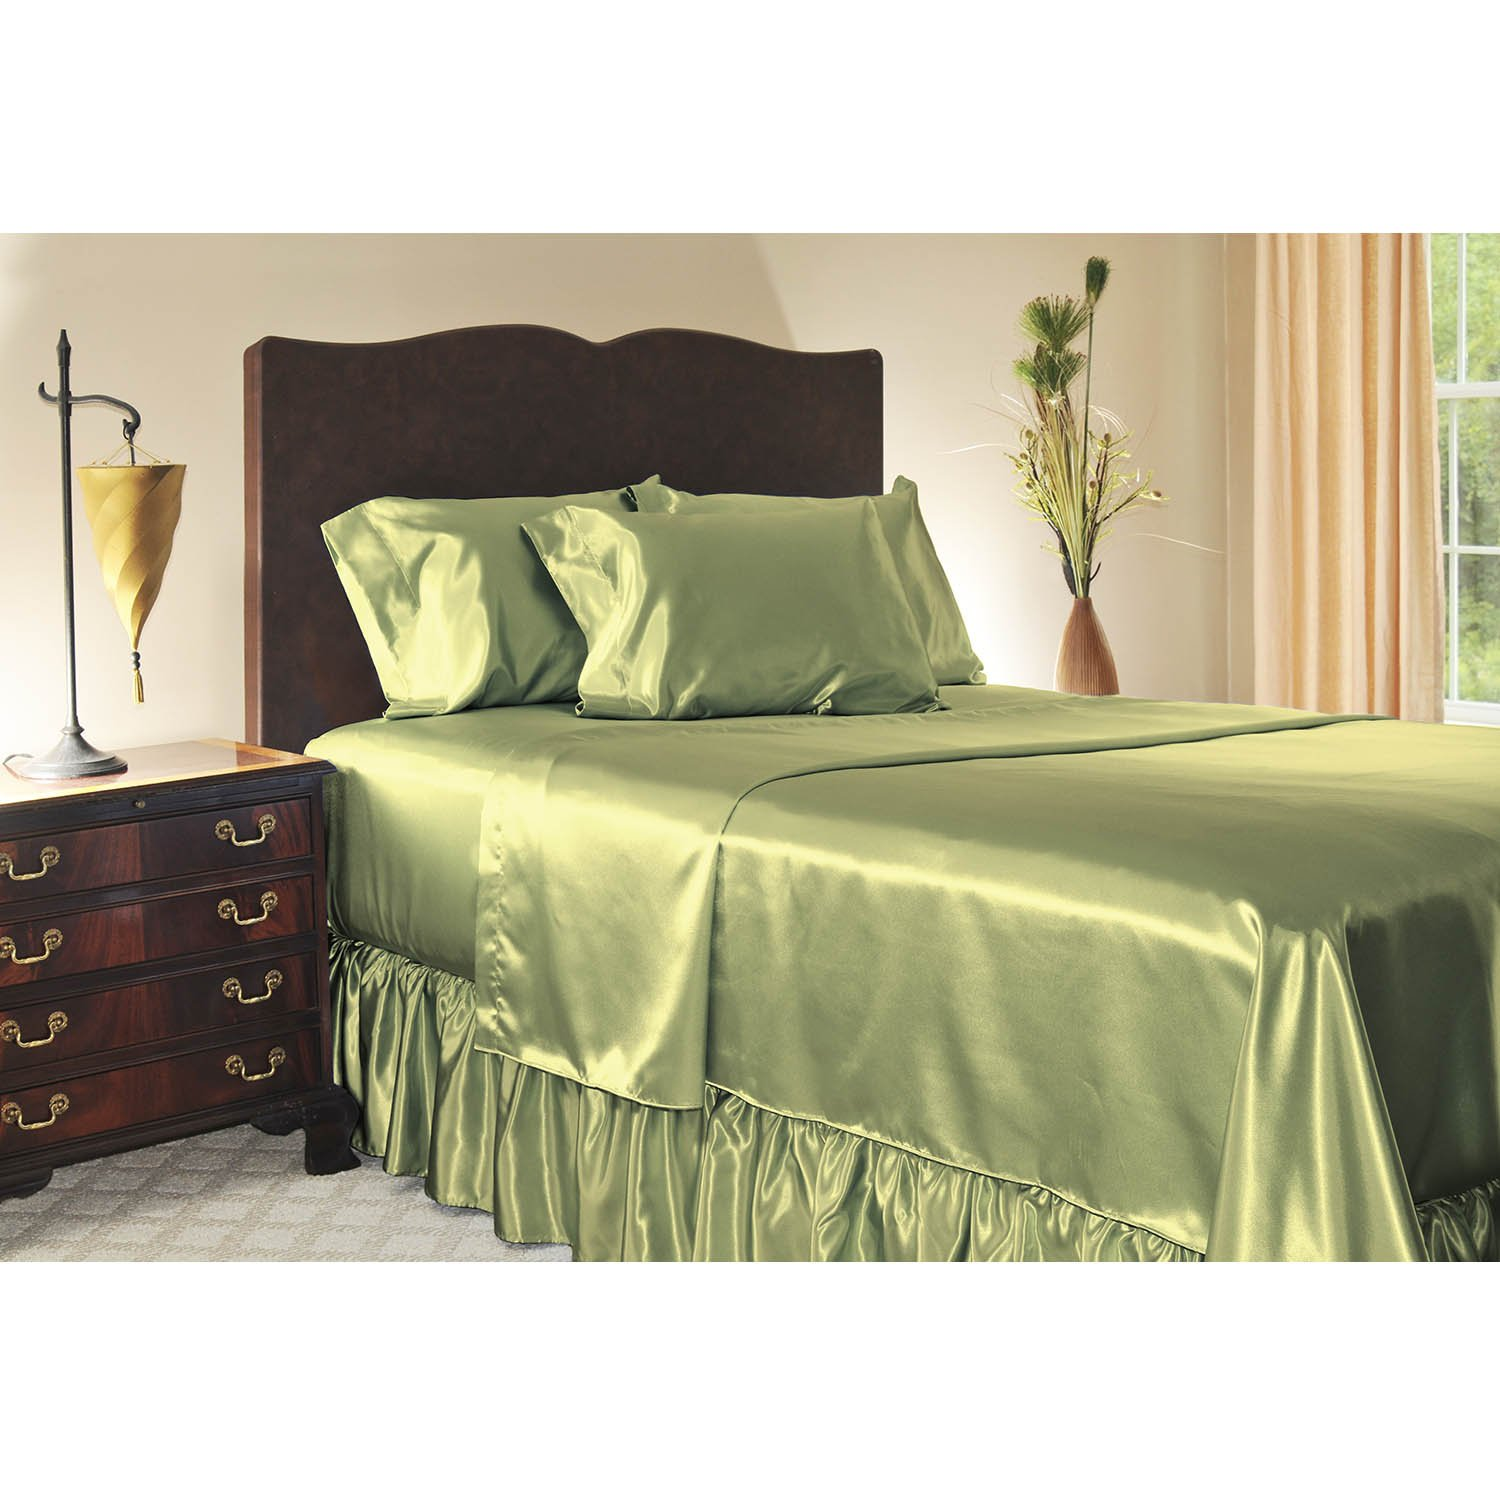 Sage Sweet Dreams Luxury Satin Pillowcase with Zipper, Queen